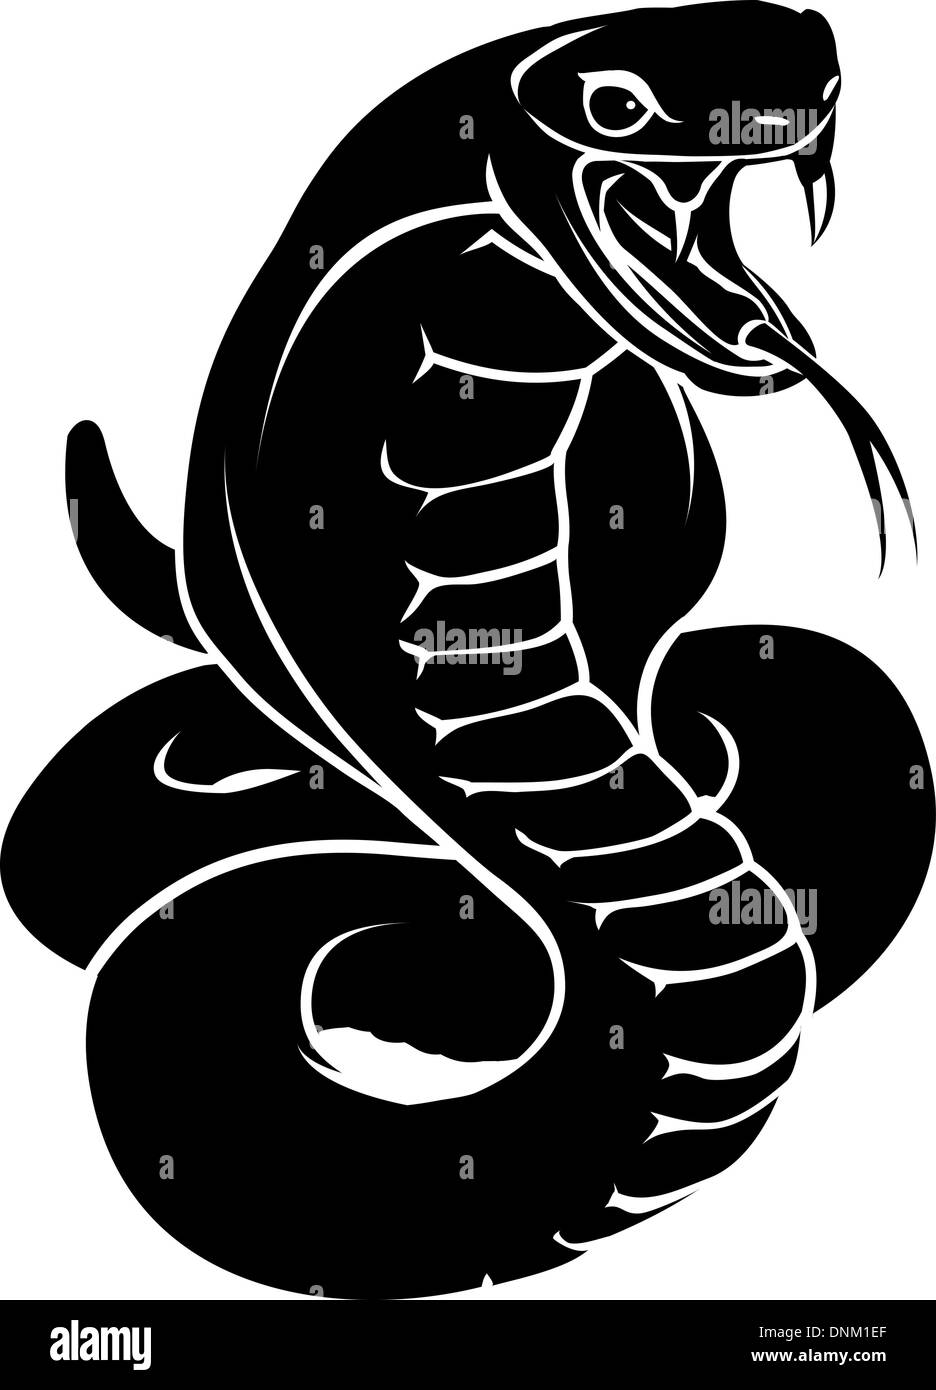 an illustration of a stylised snake or cobra perhaps a snake tattoo stock vector art. Black Bedroom Furniture Sets. Home Design Ideas